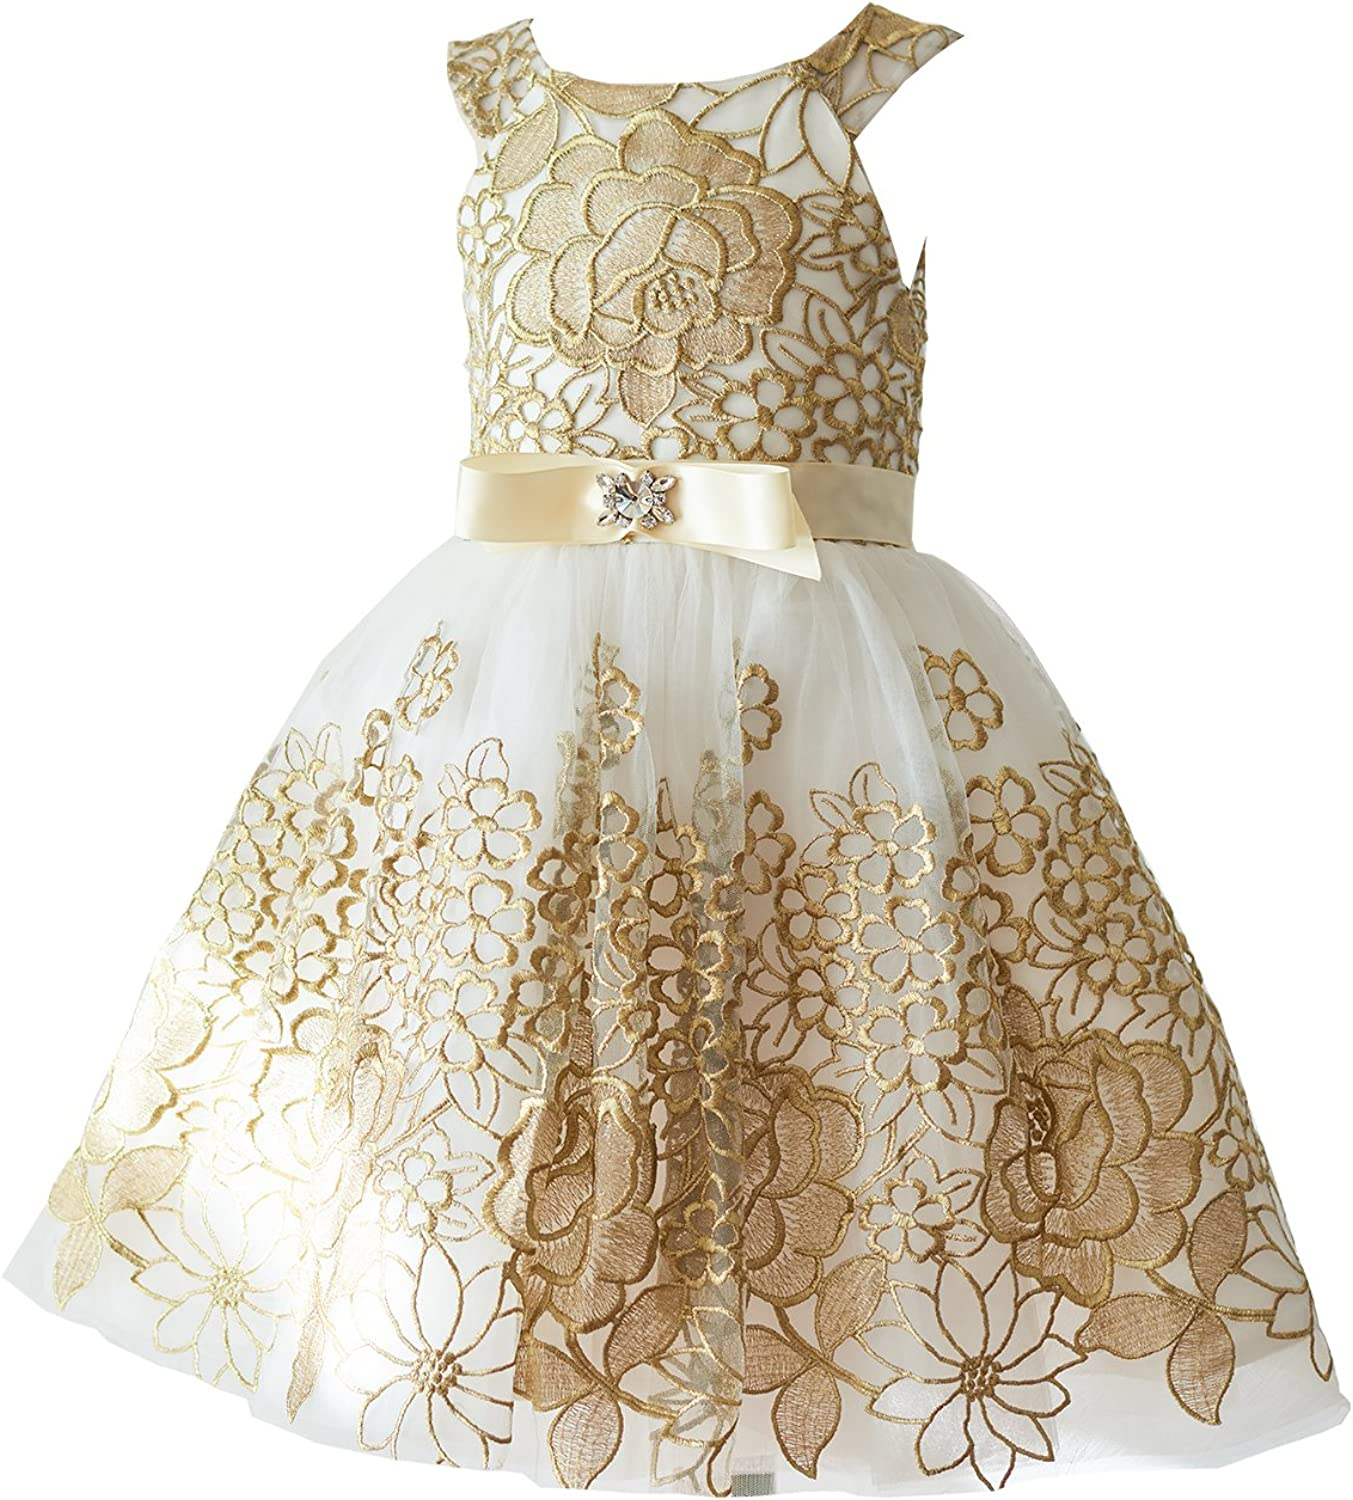 Miama Gold Lace Tulle Wedding Flower